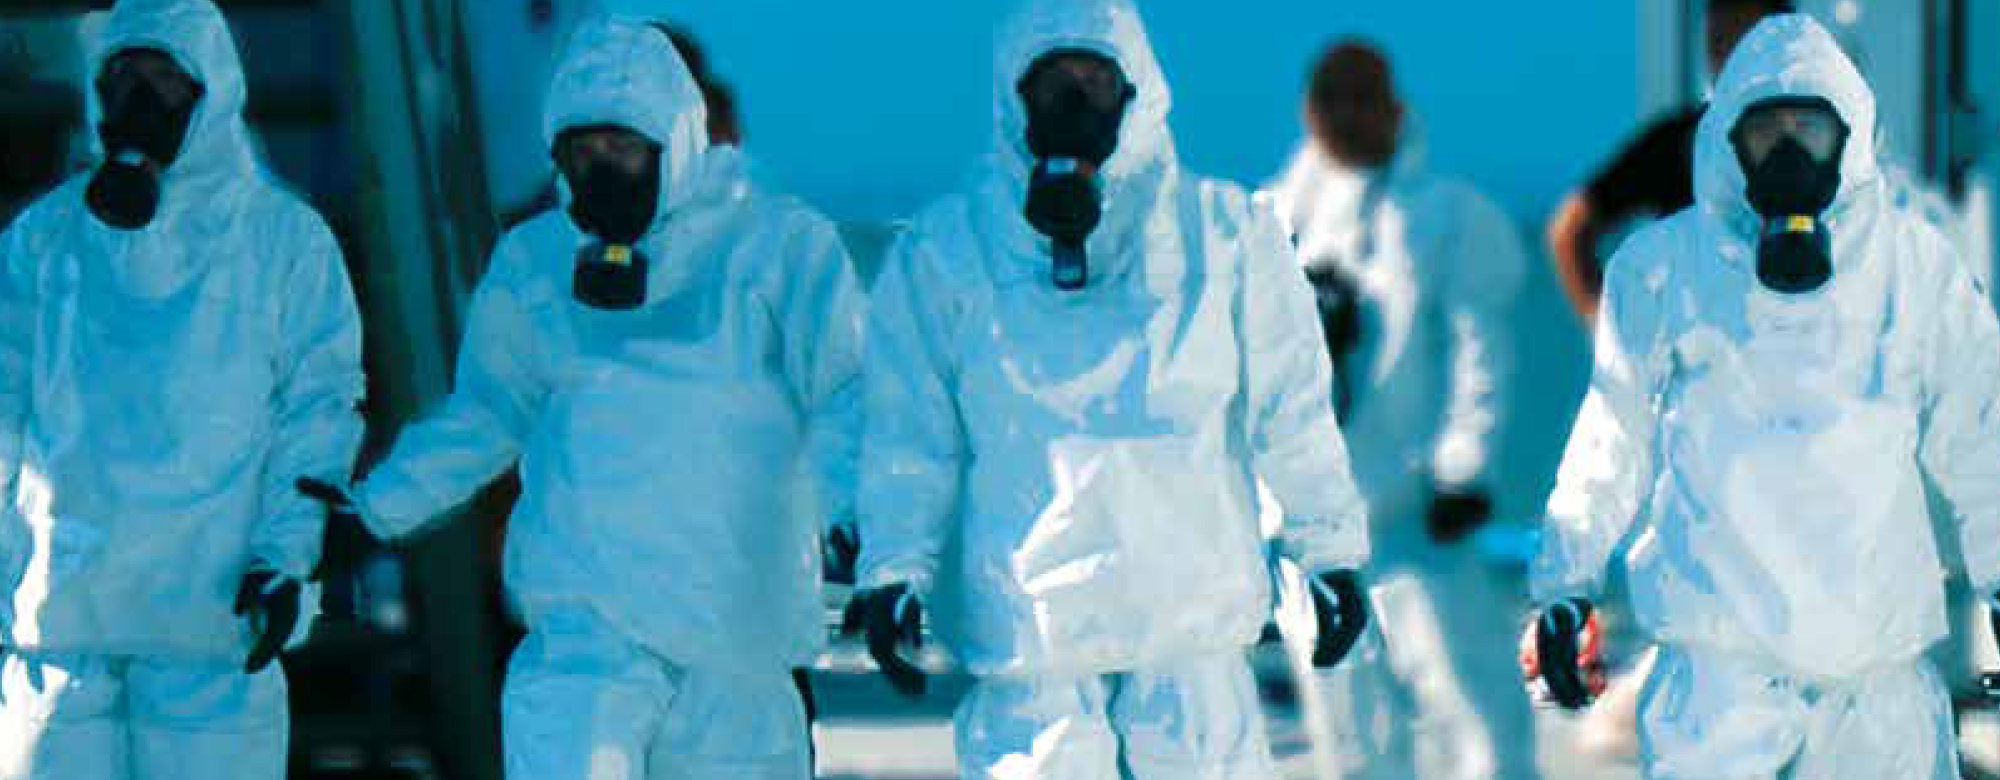 Issue 28: CBRN risks and threats